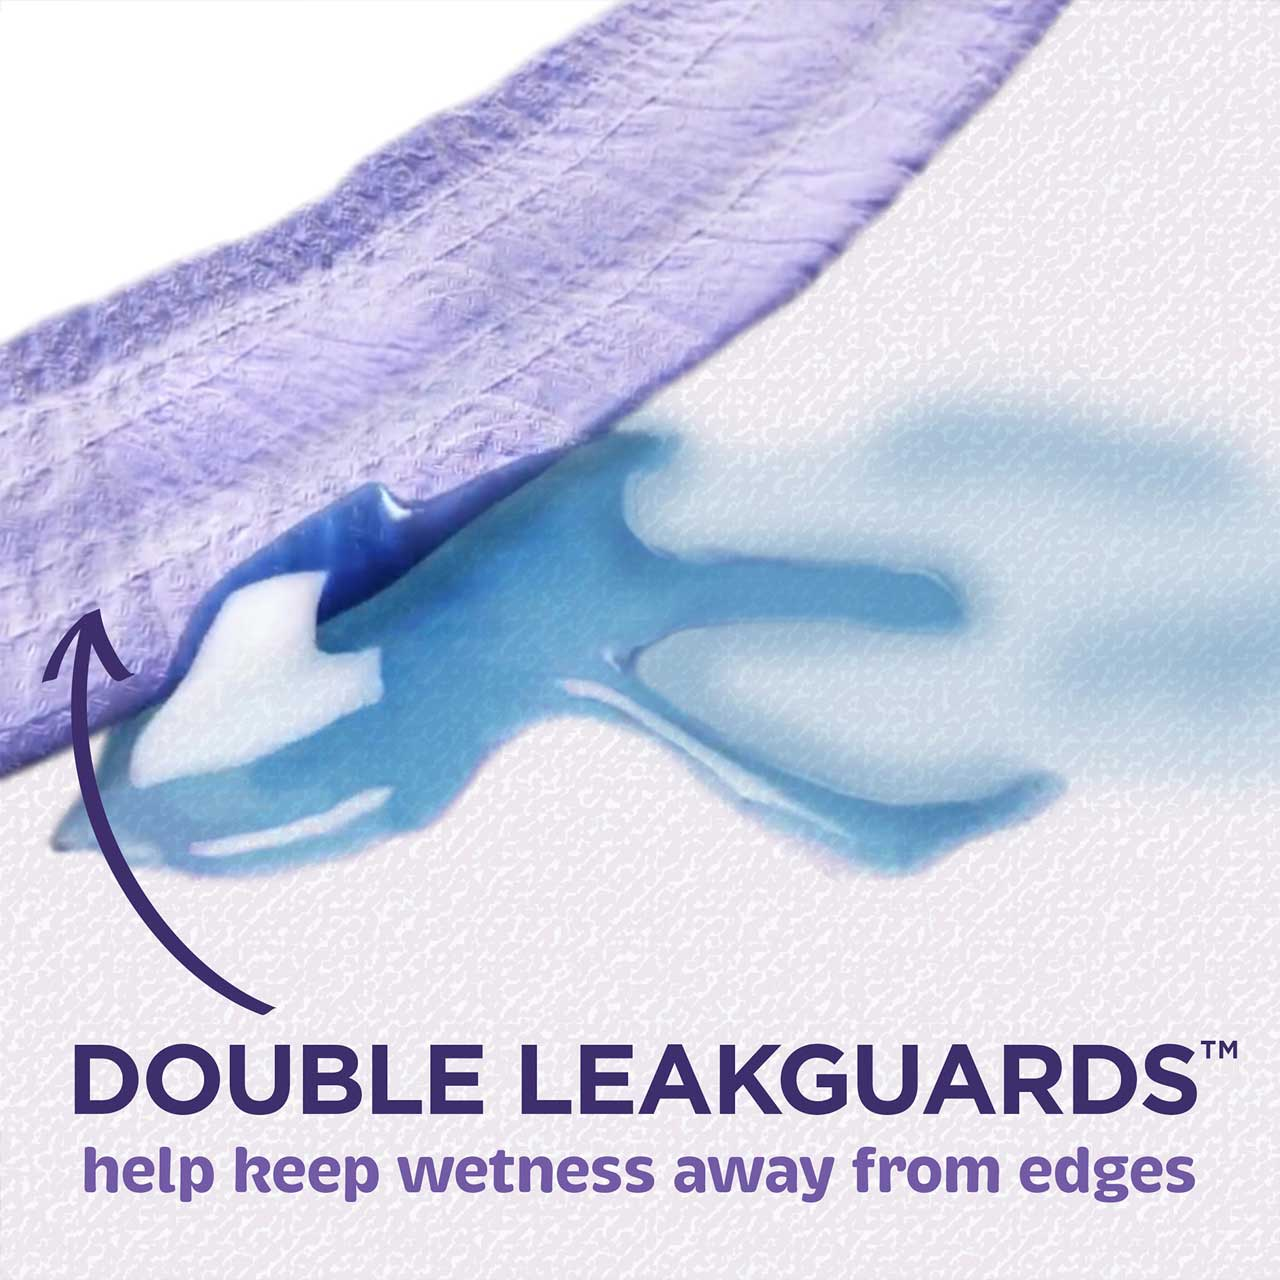 Double Leakguards: help keep wetness away from edges